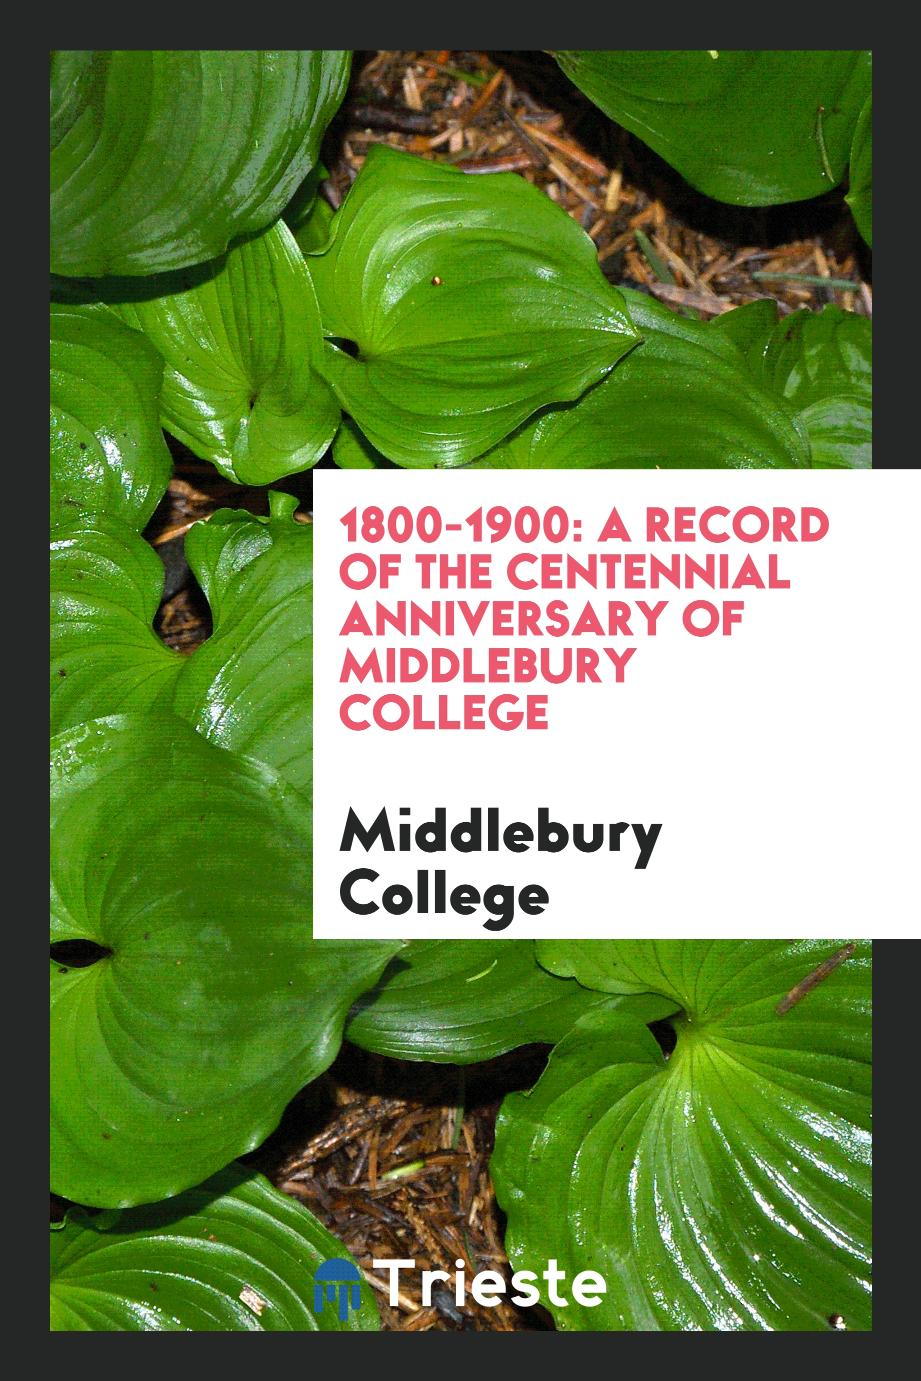 1800-1900: A Record of the Centennial Anniversary of Middlebury College